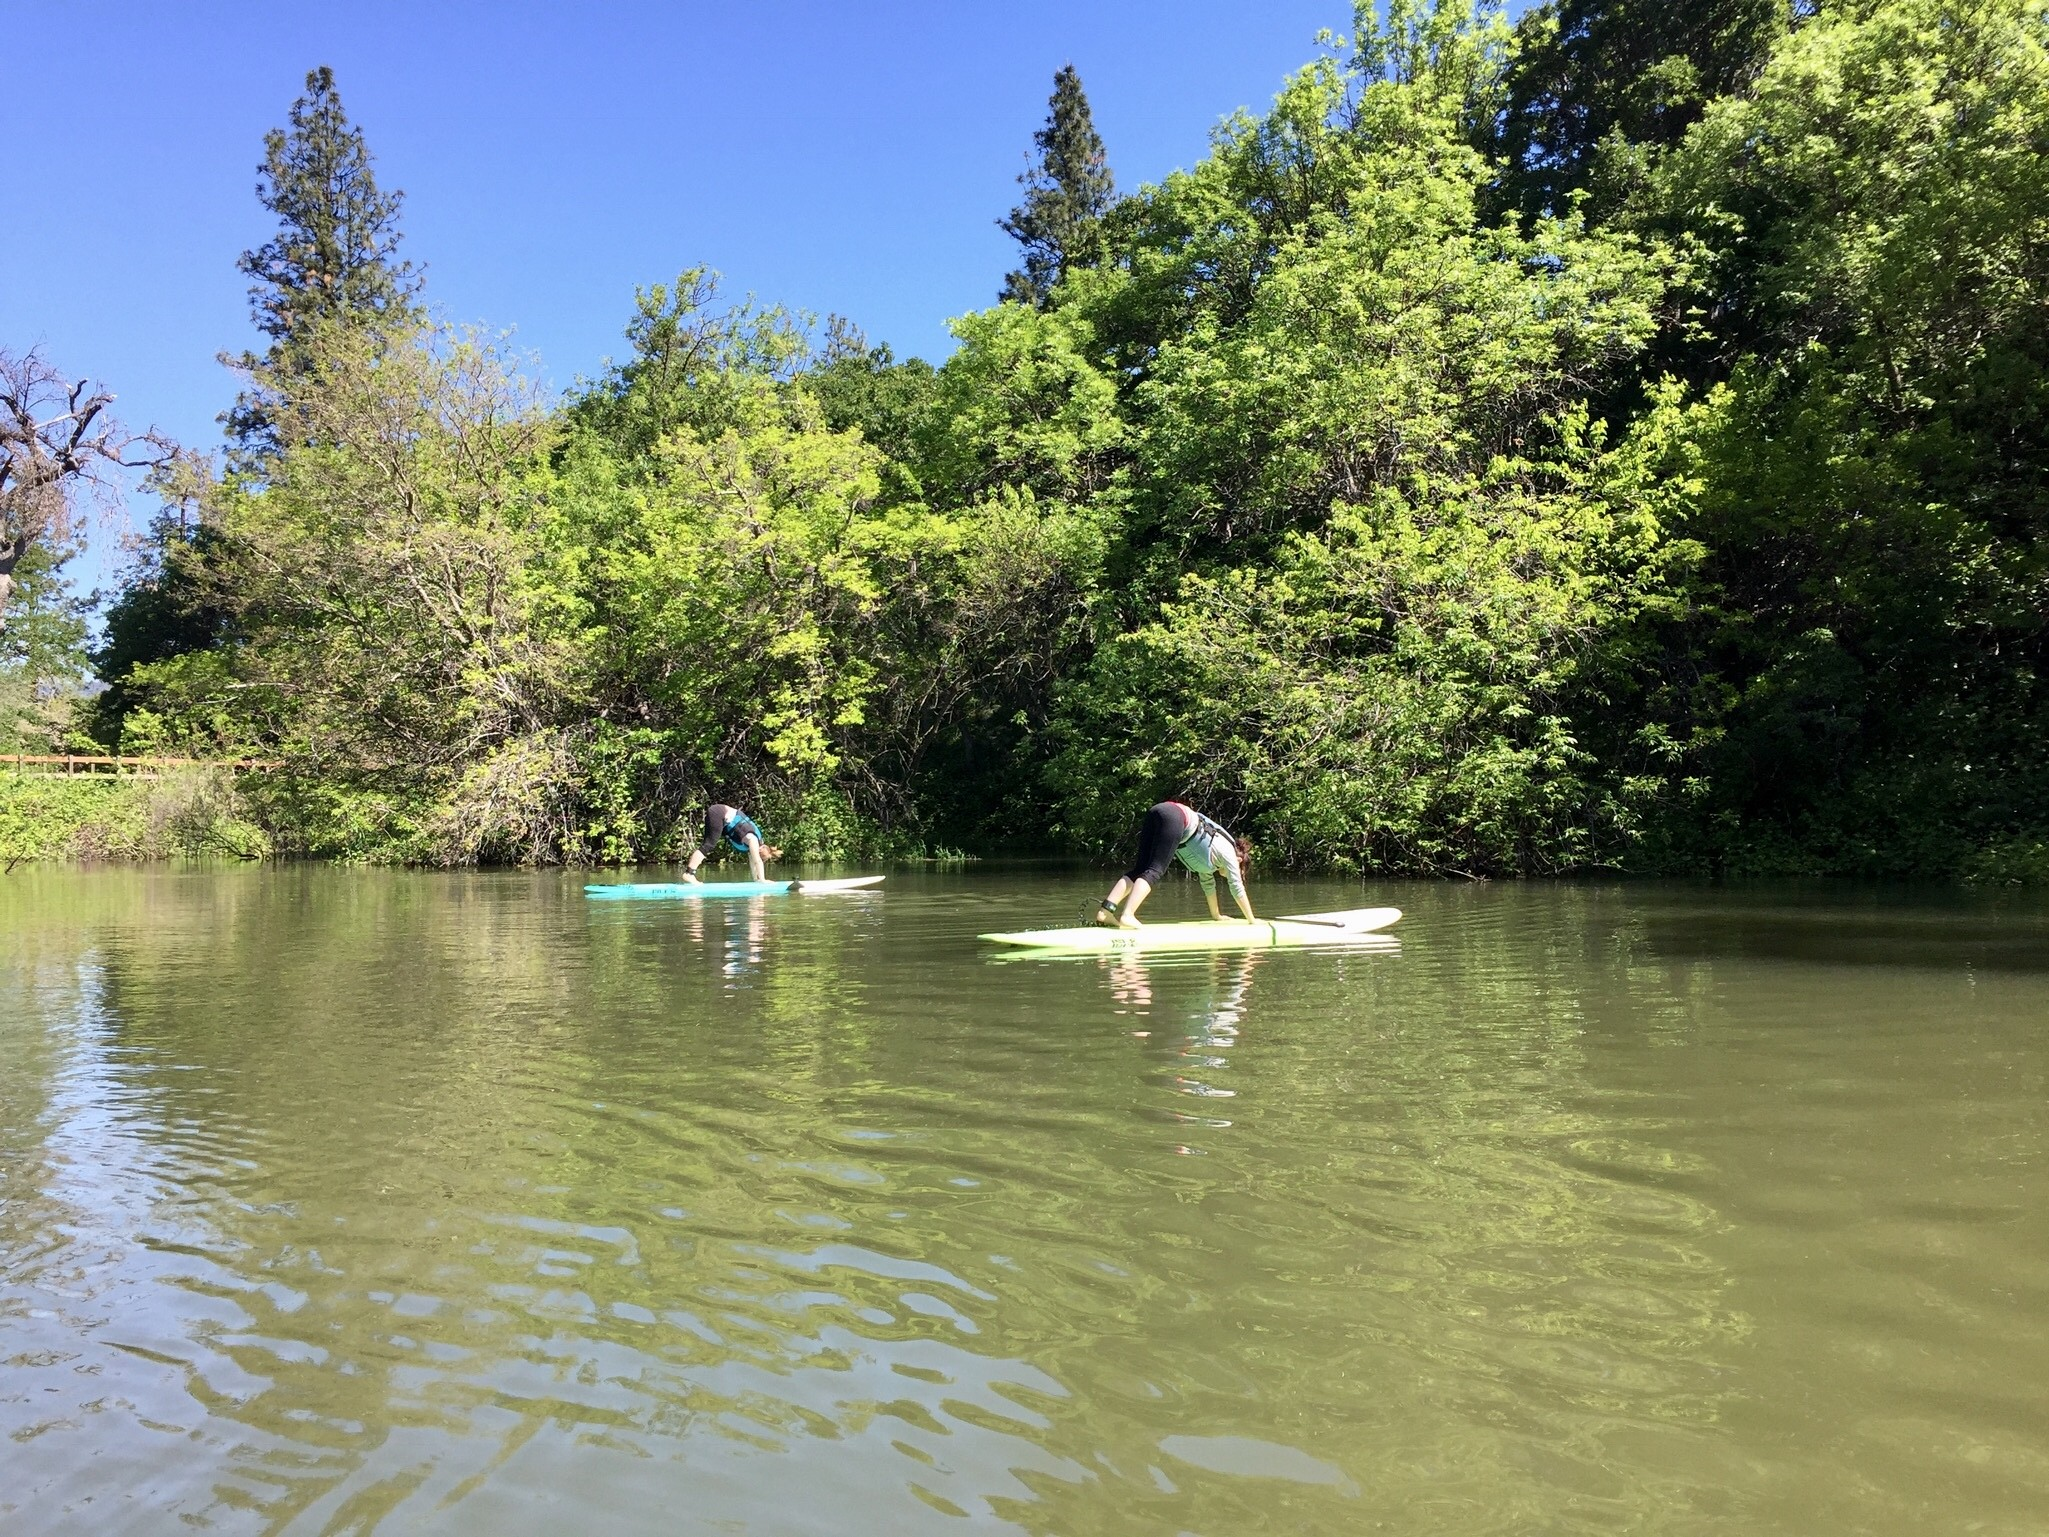 Oregon: SUP auf dem Columbia River